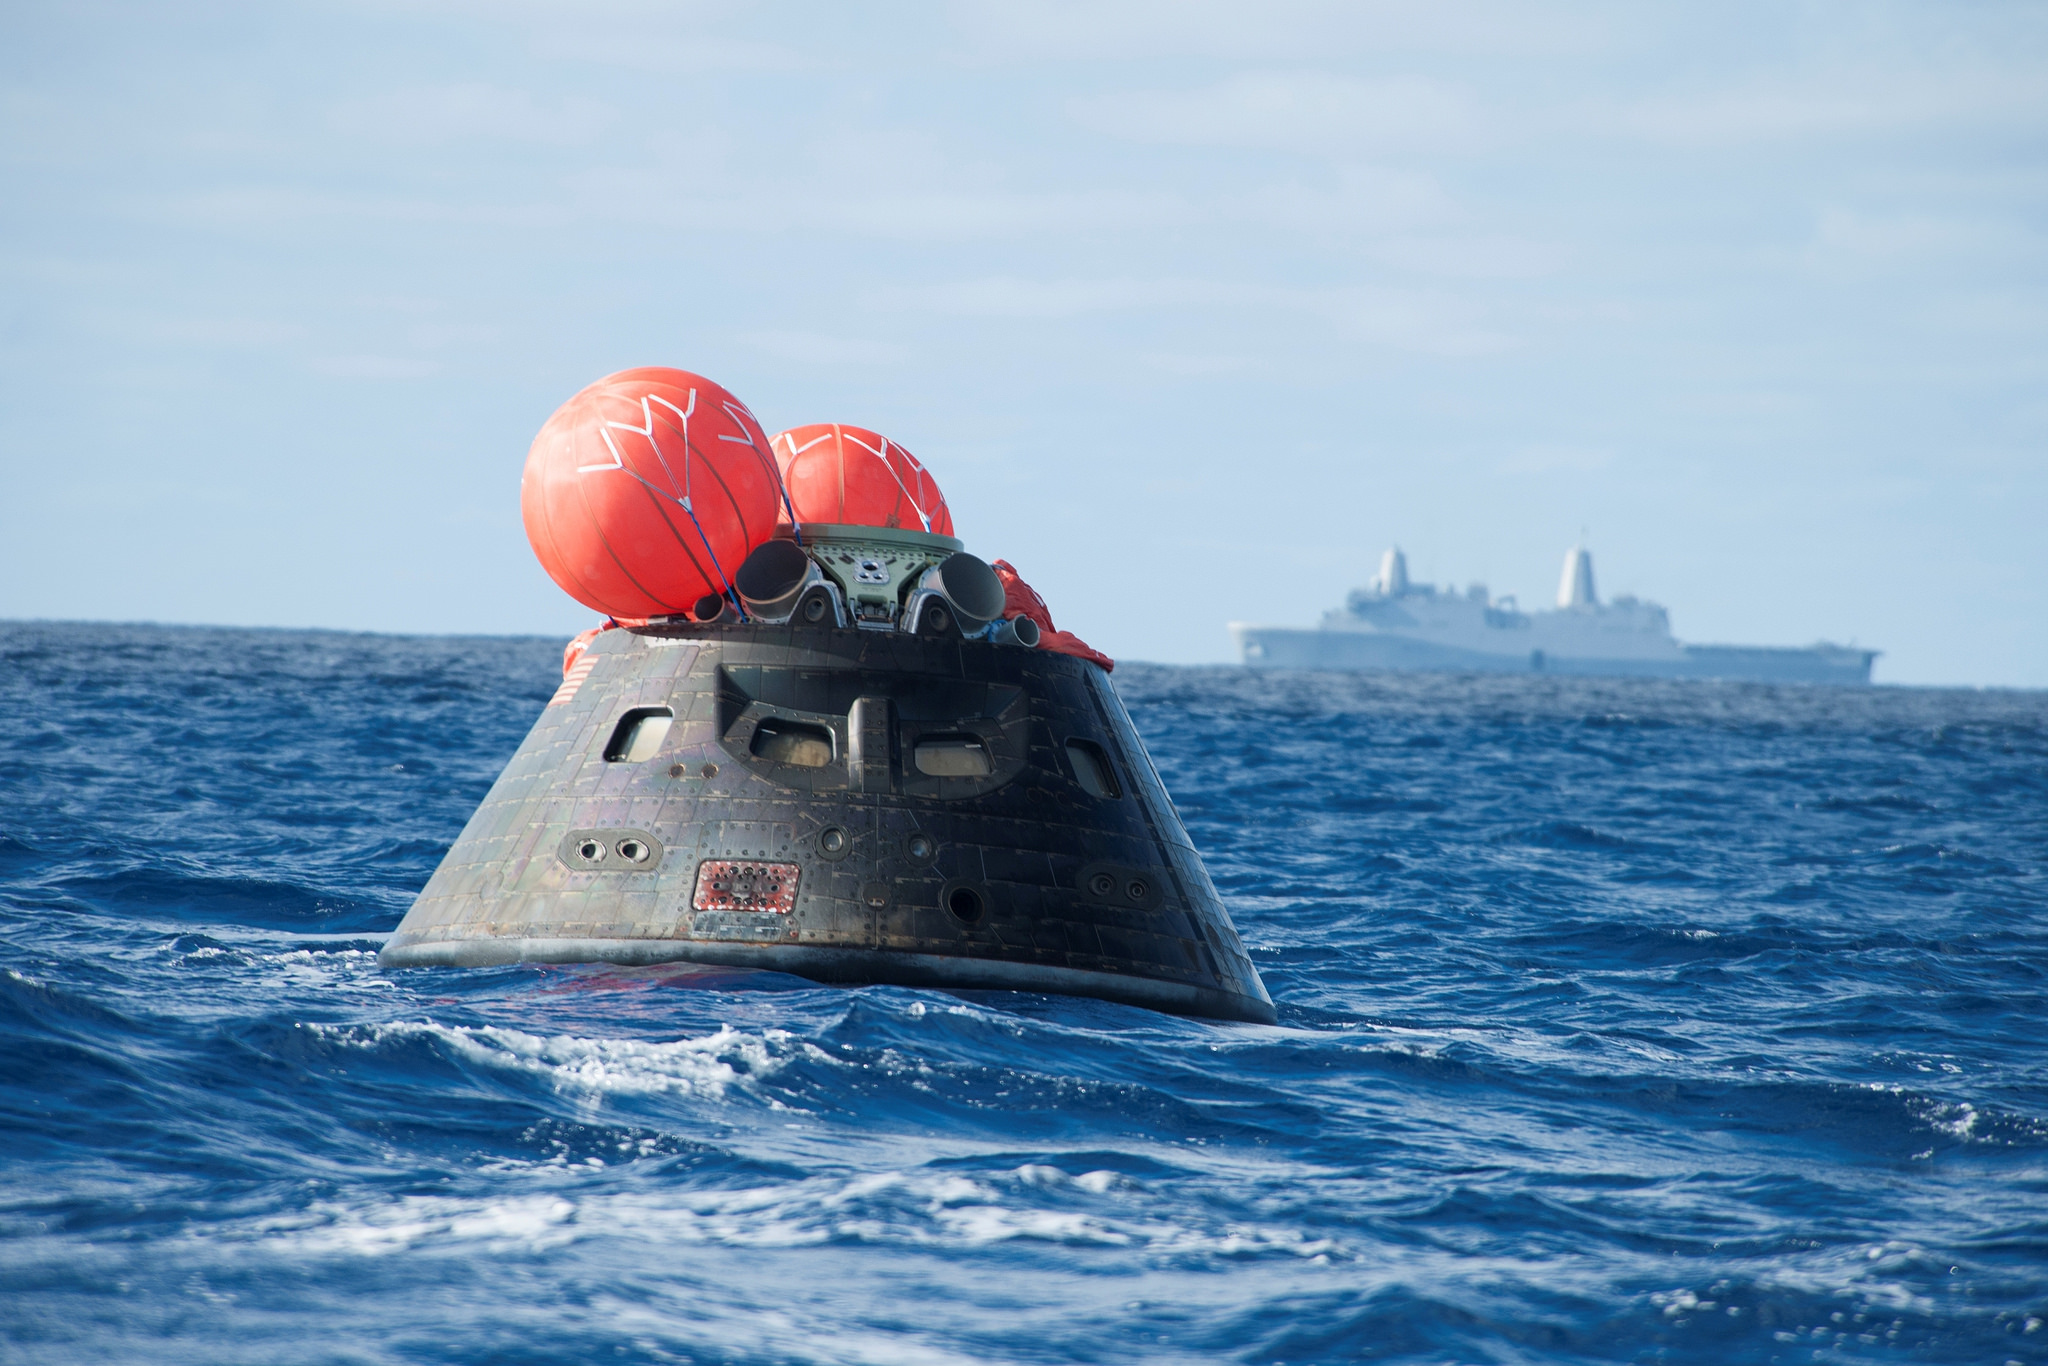 NASA Orion EFT 1 spacecraft Pacific Ocean NASA image posted on SpaceFlight Insider